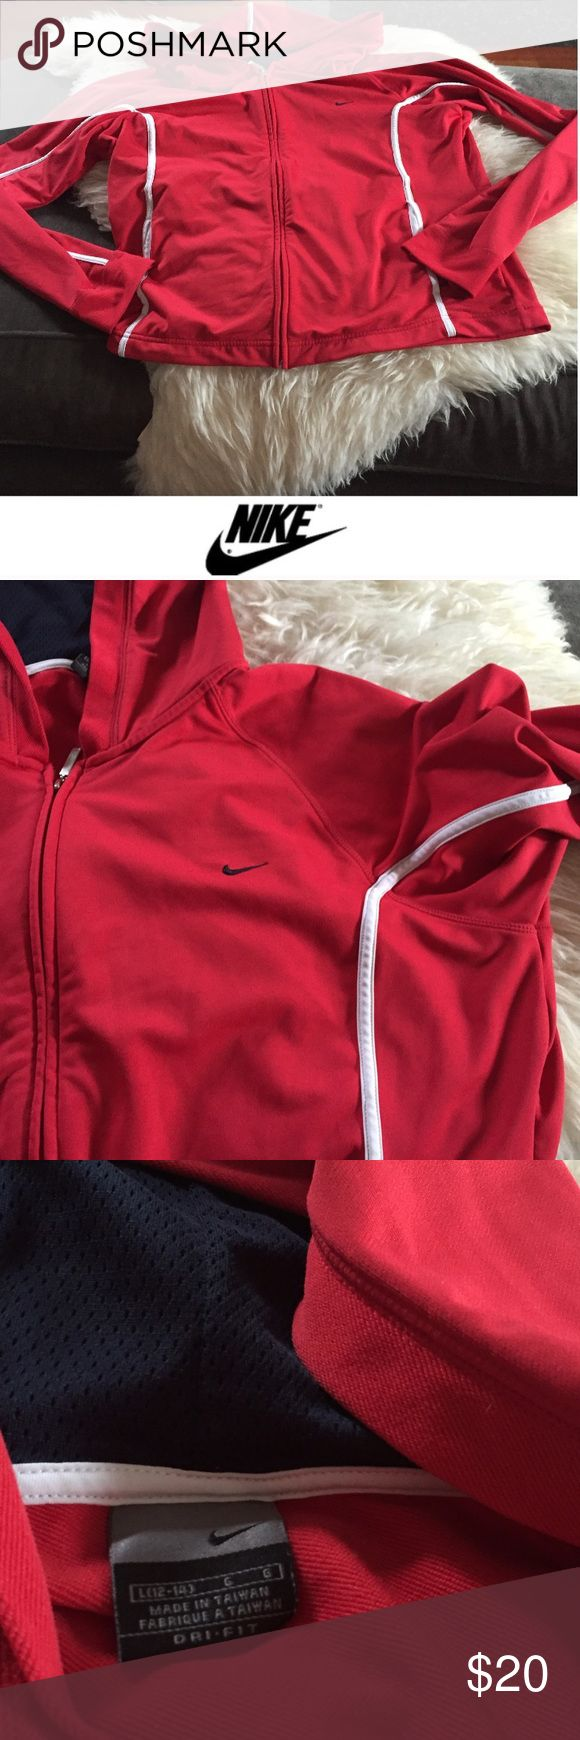 Nike Women's Red Zip Up Athletic Hoodie Nike Women's Red Zip Up Athletic Hoodie. White accent stripes. Front pockets. 24 inches long. 22 inch bust. Gently worn. Great condition. Feel free to make an offer or bundle & save! Nike Tops Sweatshirts & Hoodies